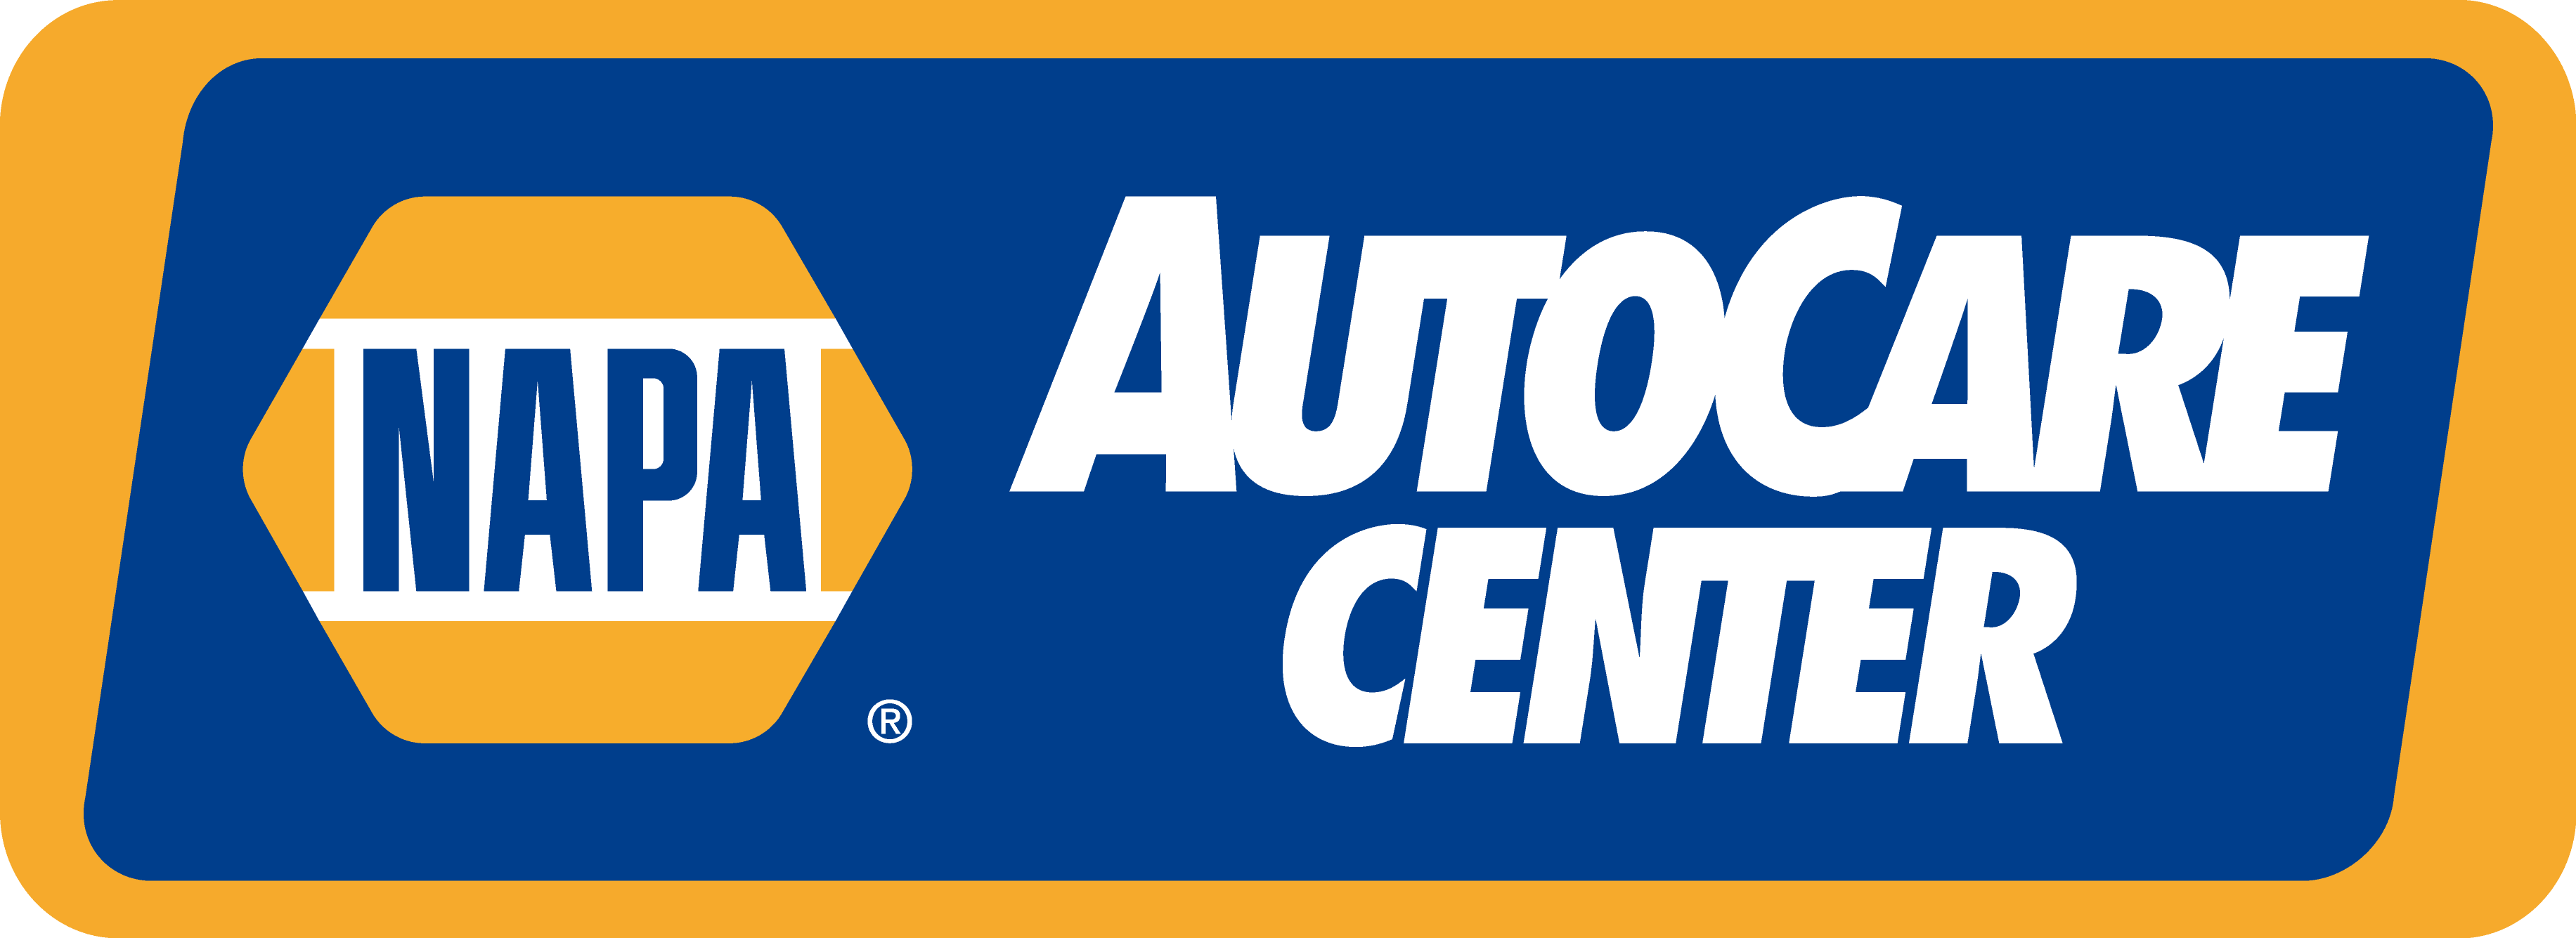 NAPA Auto Care Center, Morgan Park Auto Service, Inc., Chicago, IL, 60628